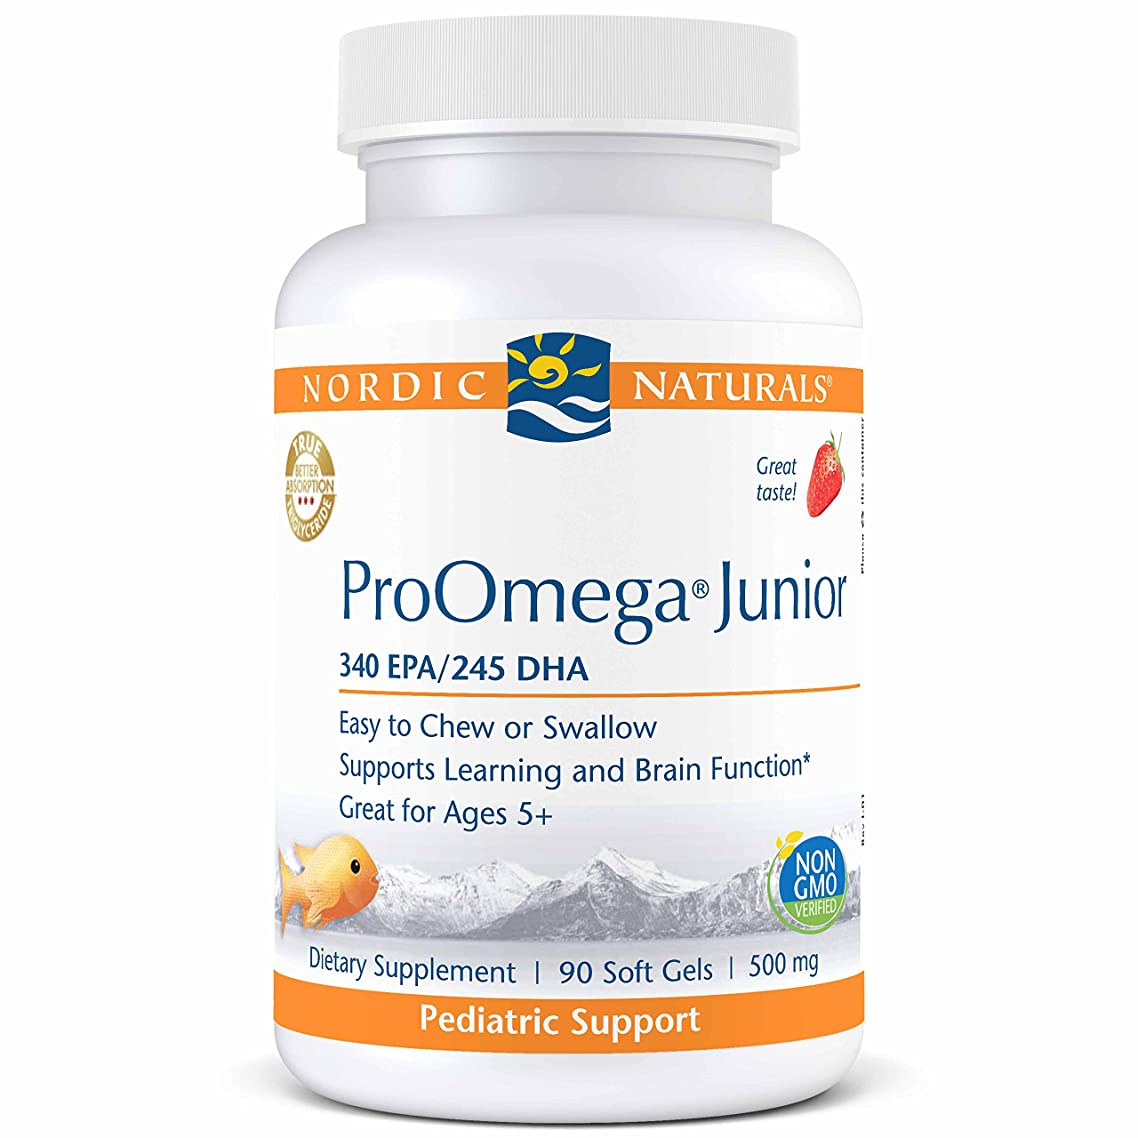 Nordic Naturals ProOmega Junior - Fish Oil, 340 mg EPA, 245 mg DHA, Support for Healthy Neurological, Nervous System, Eye, and Immune System Development*, Strawberry Flavor, 90 Soft Gels